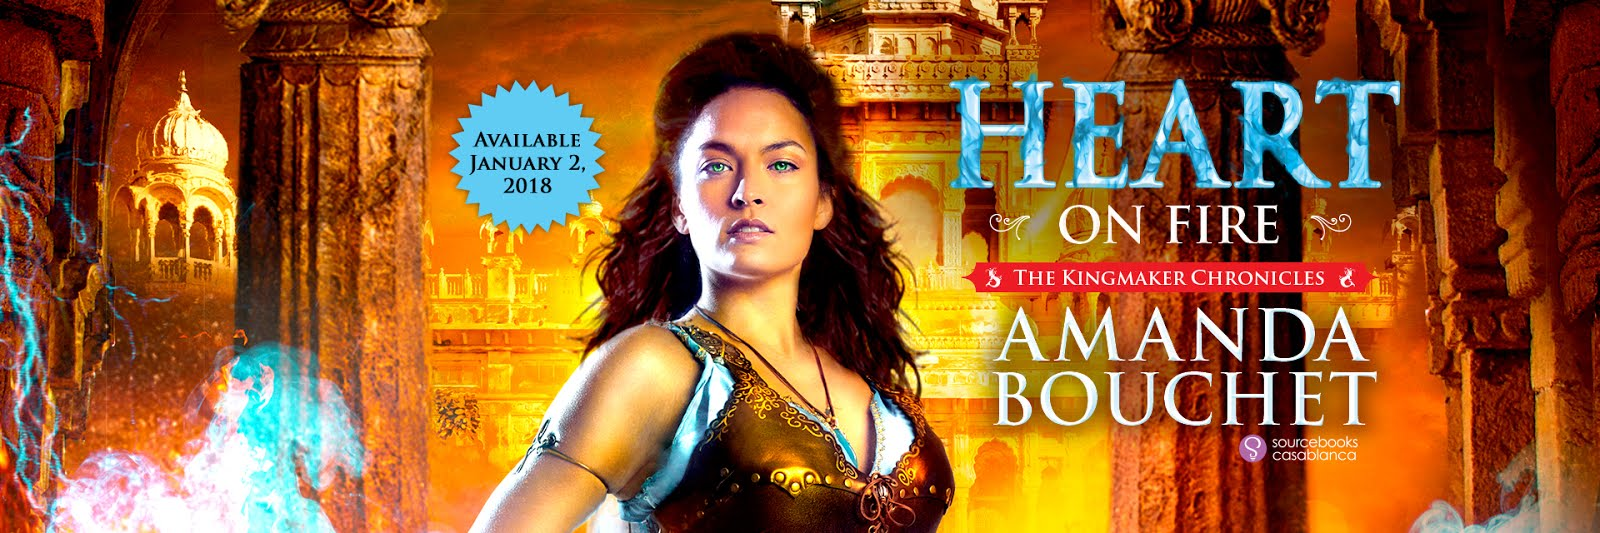 Heart on Fire Pre-Pub Tour, Exclusive Scene & Giveaway